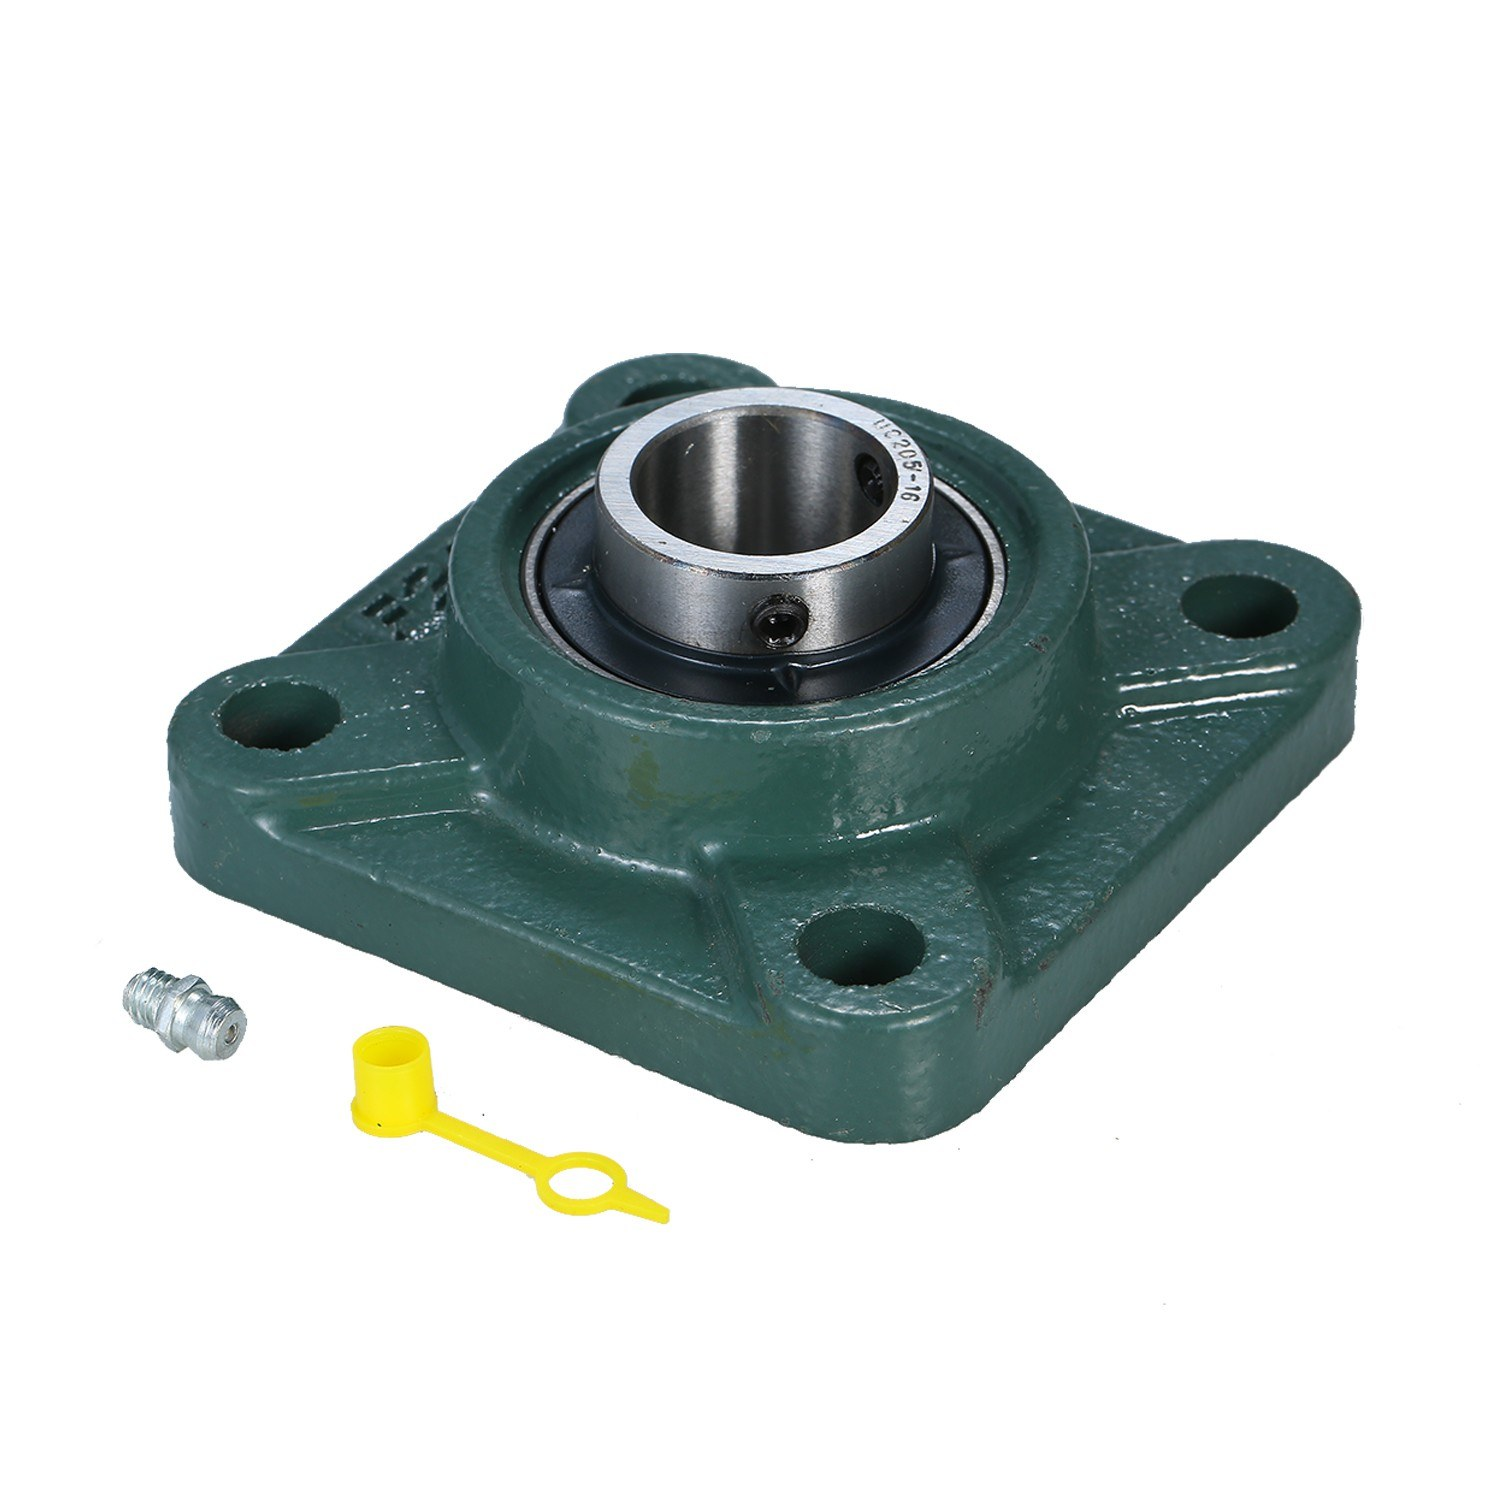 1 Inch 4 Bolts Pillow Block Square Flange Bearing UCF205-16 with Bearing Steel and Cast Iron Housing